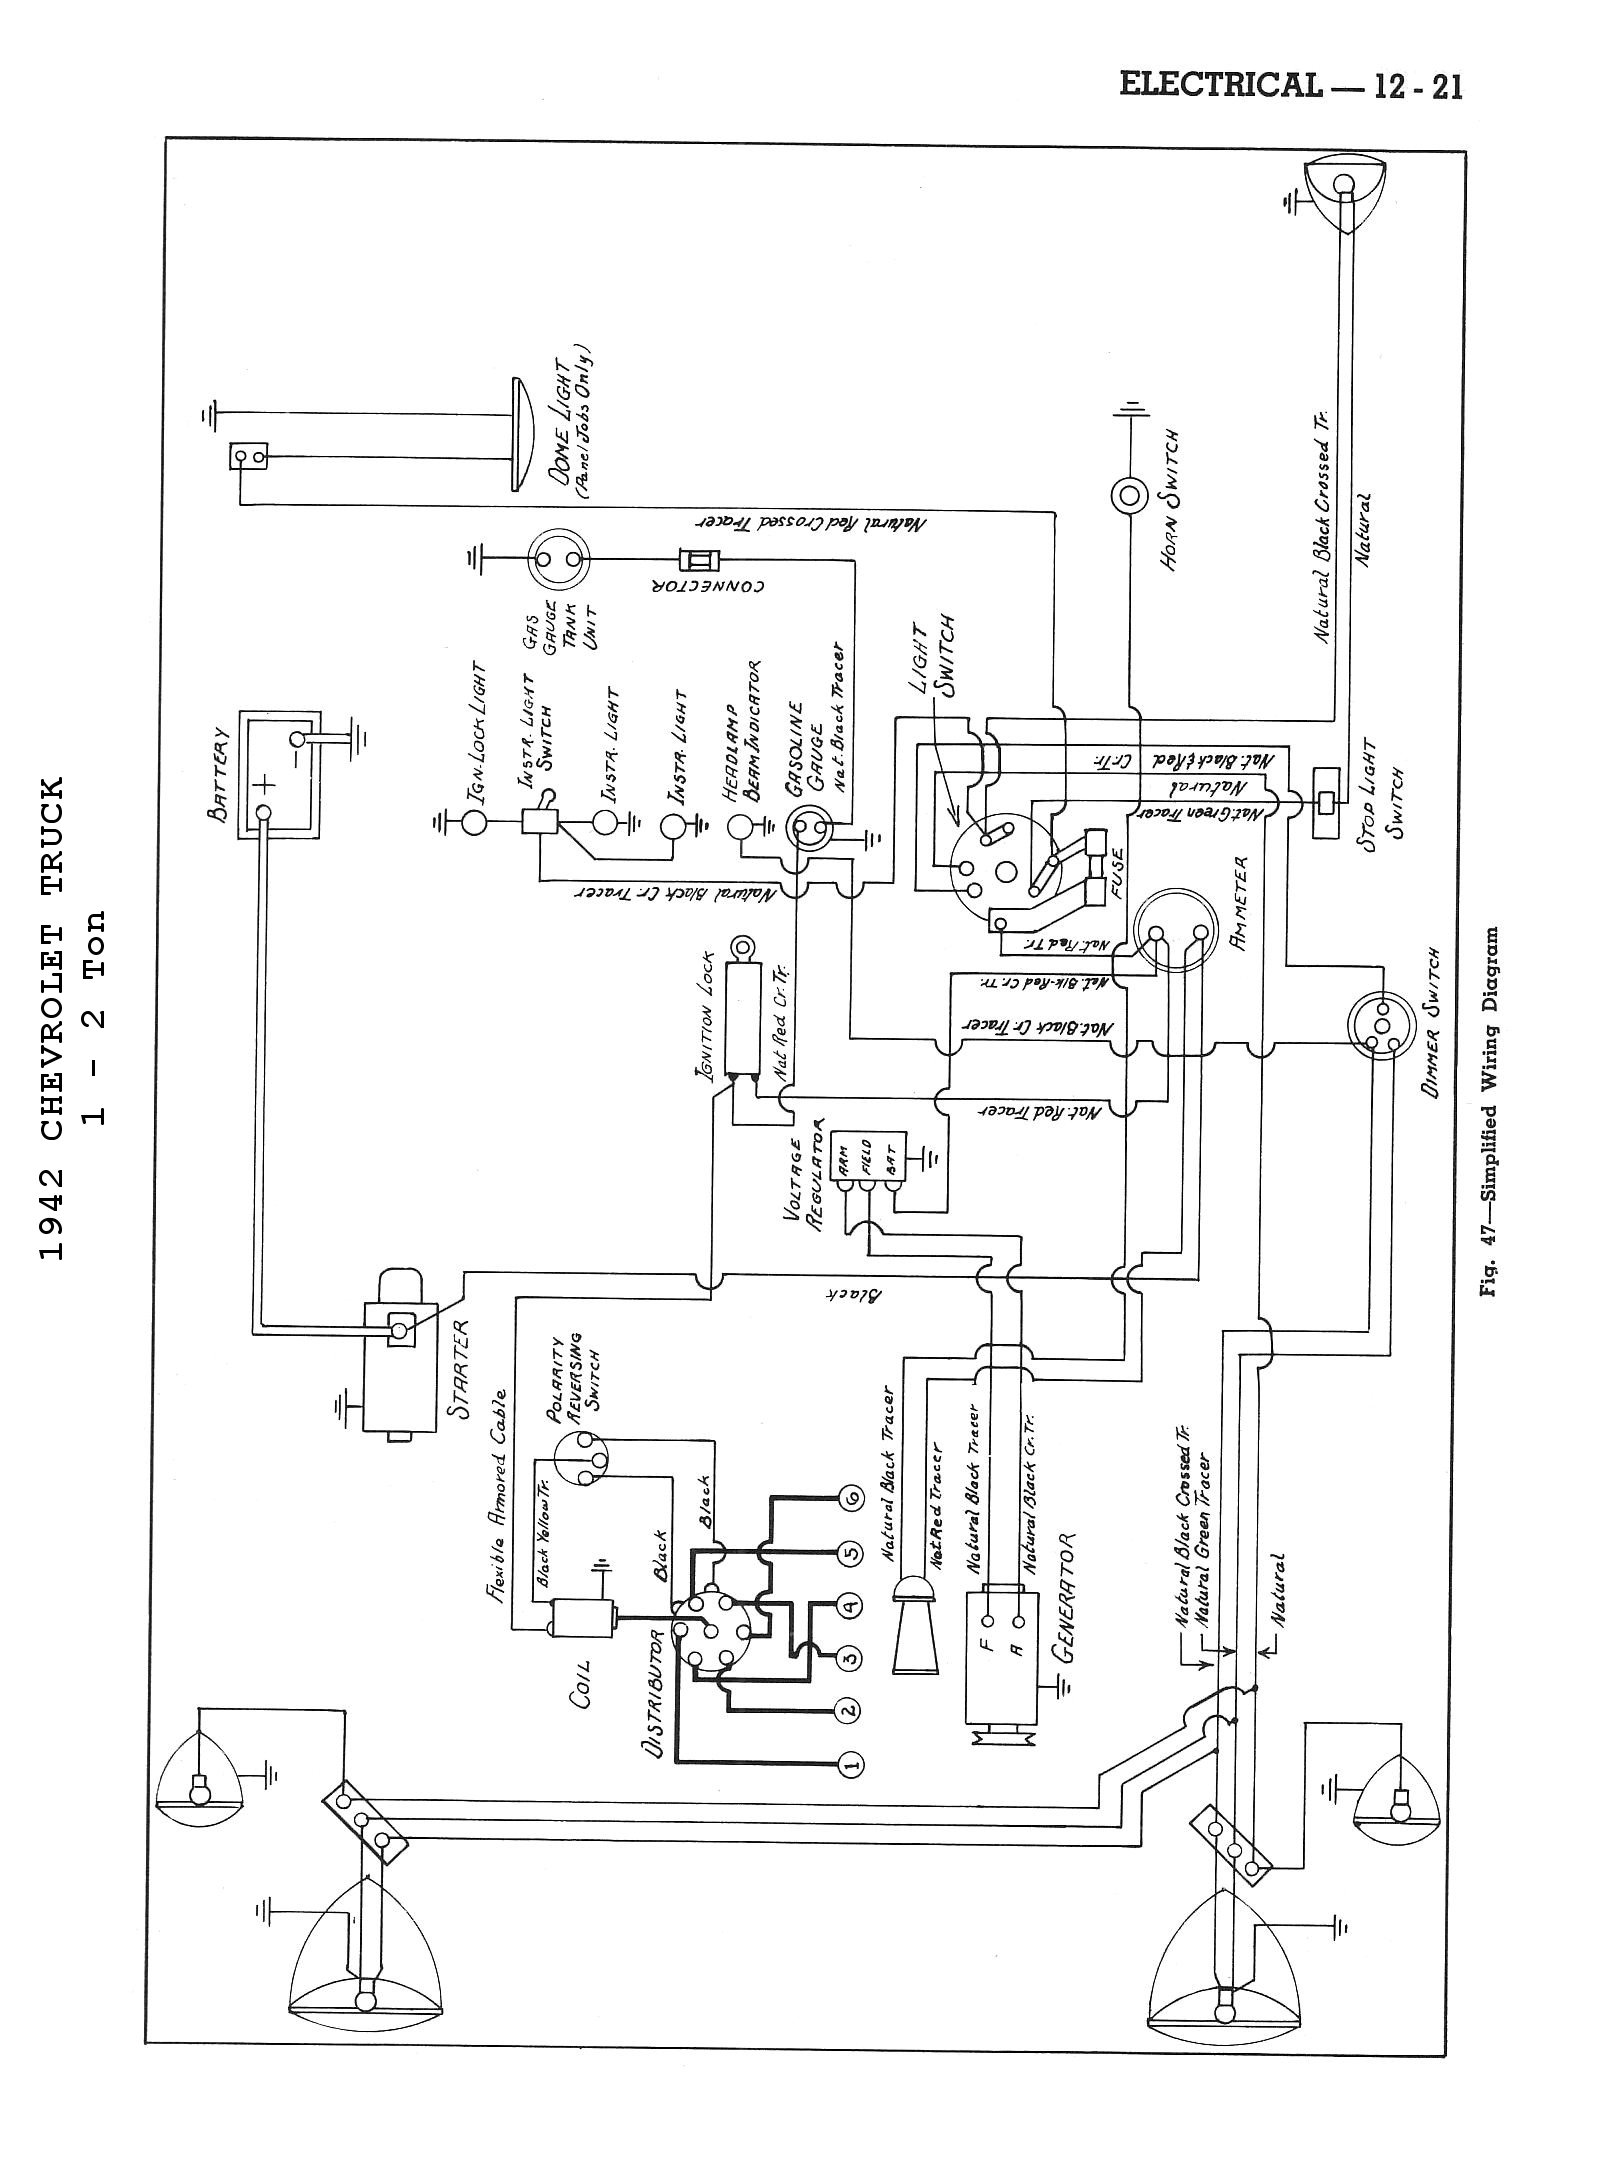 Wiring in addition Flat Head Engines Plymouth Dodge Desoto Chrysler Six And moreover Wiring Diagram For 1935 Desoto moreover 1959 Lincoln Wiring Diagram moreover 1965 Ford Restoration Parts Horn 74854 Prd1. on 1950 desoto wiring diagrams for